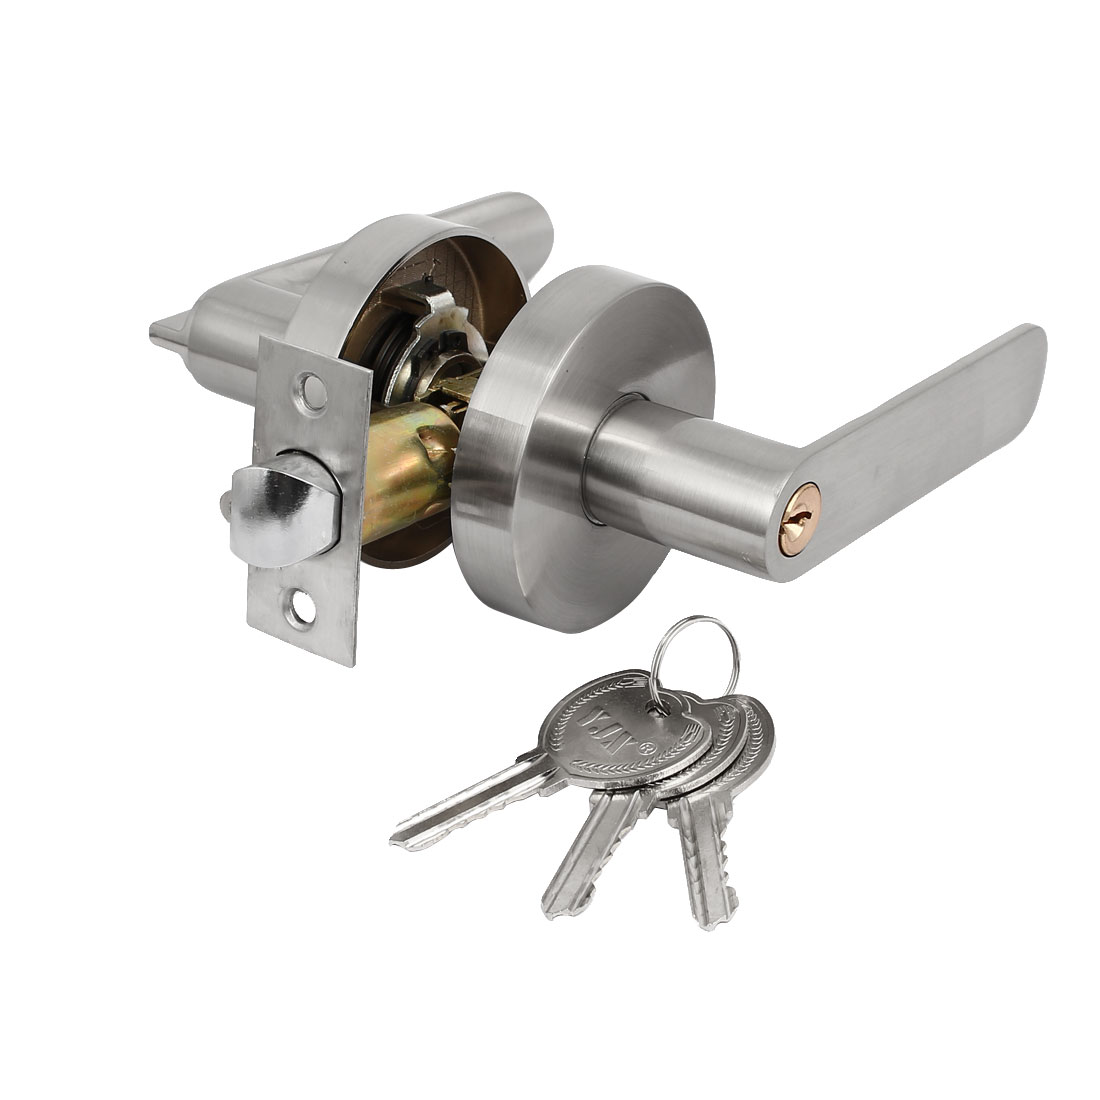 Keyed Front Entry Door Lever Handle Knob Lock Leverset Lockset 70mm Diameter